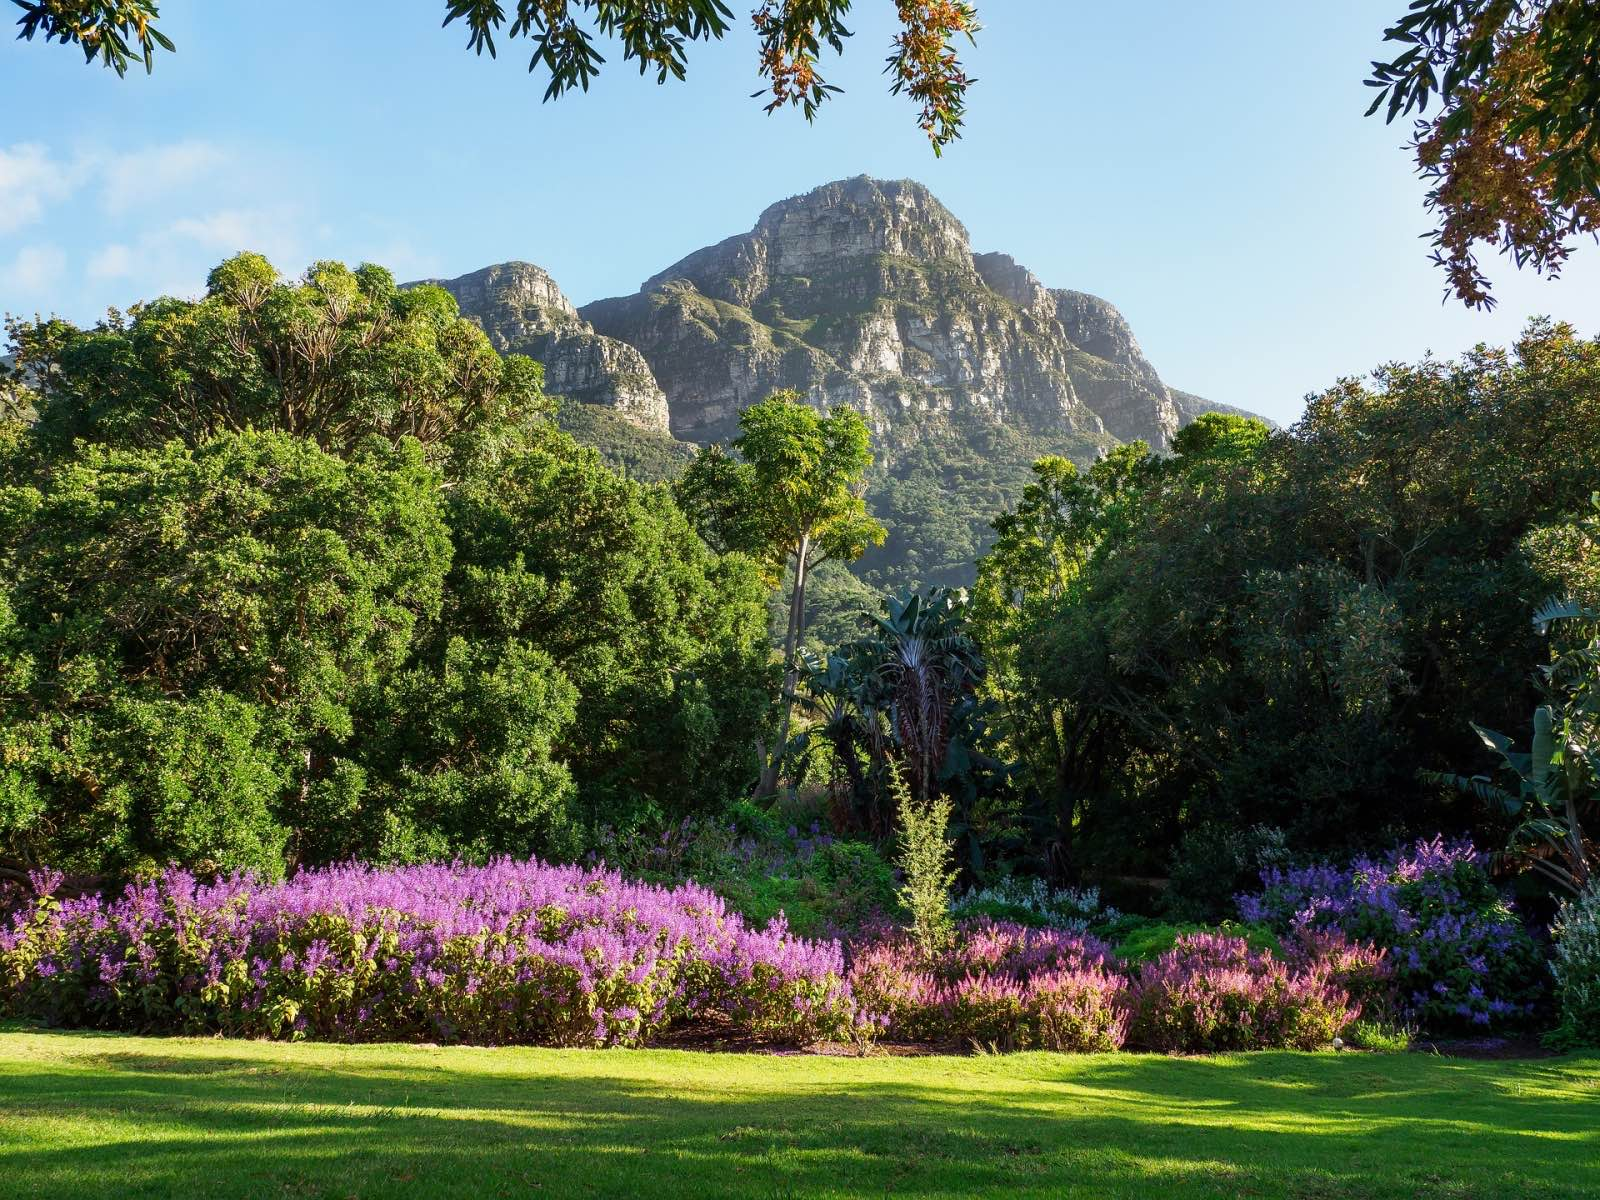 Kirstenbosch National Botanical Garden offering one of the best flower experiences in the world